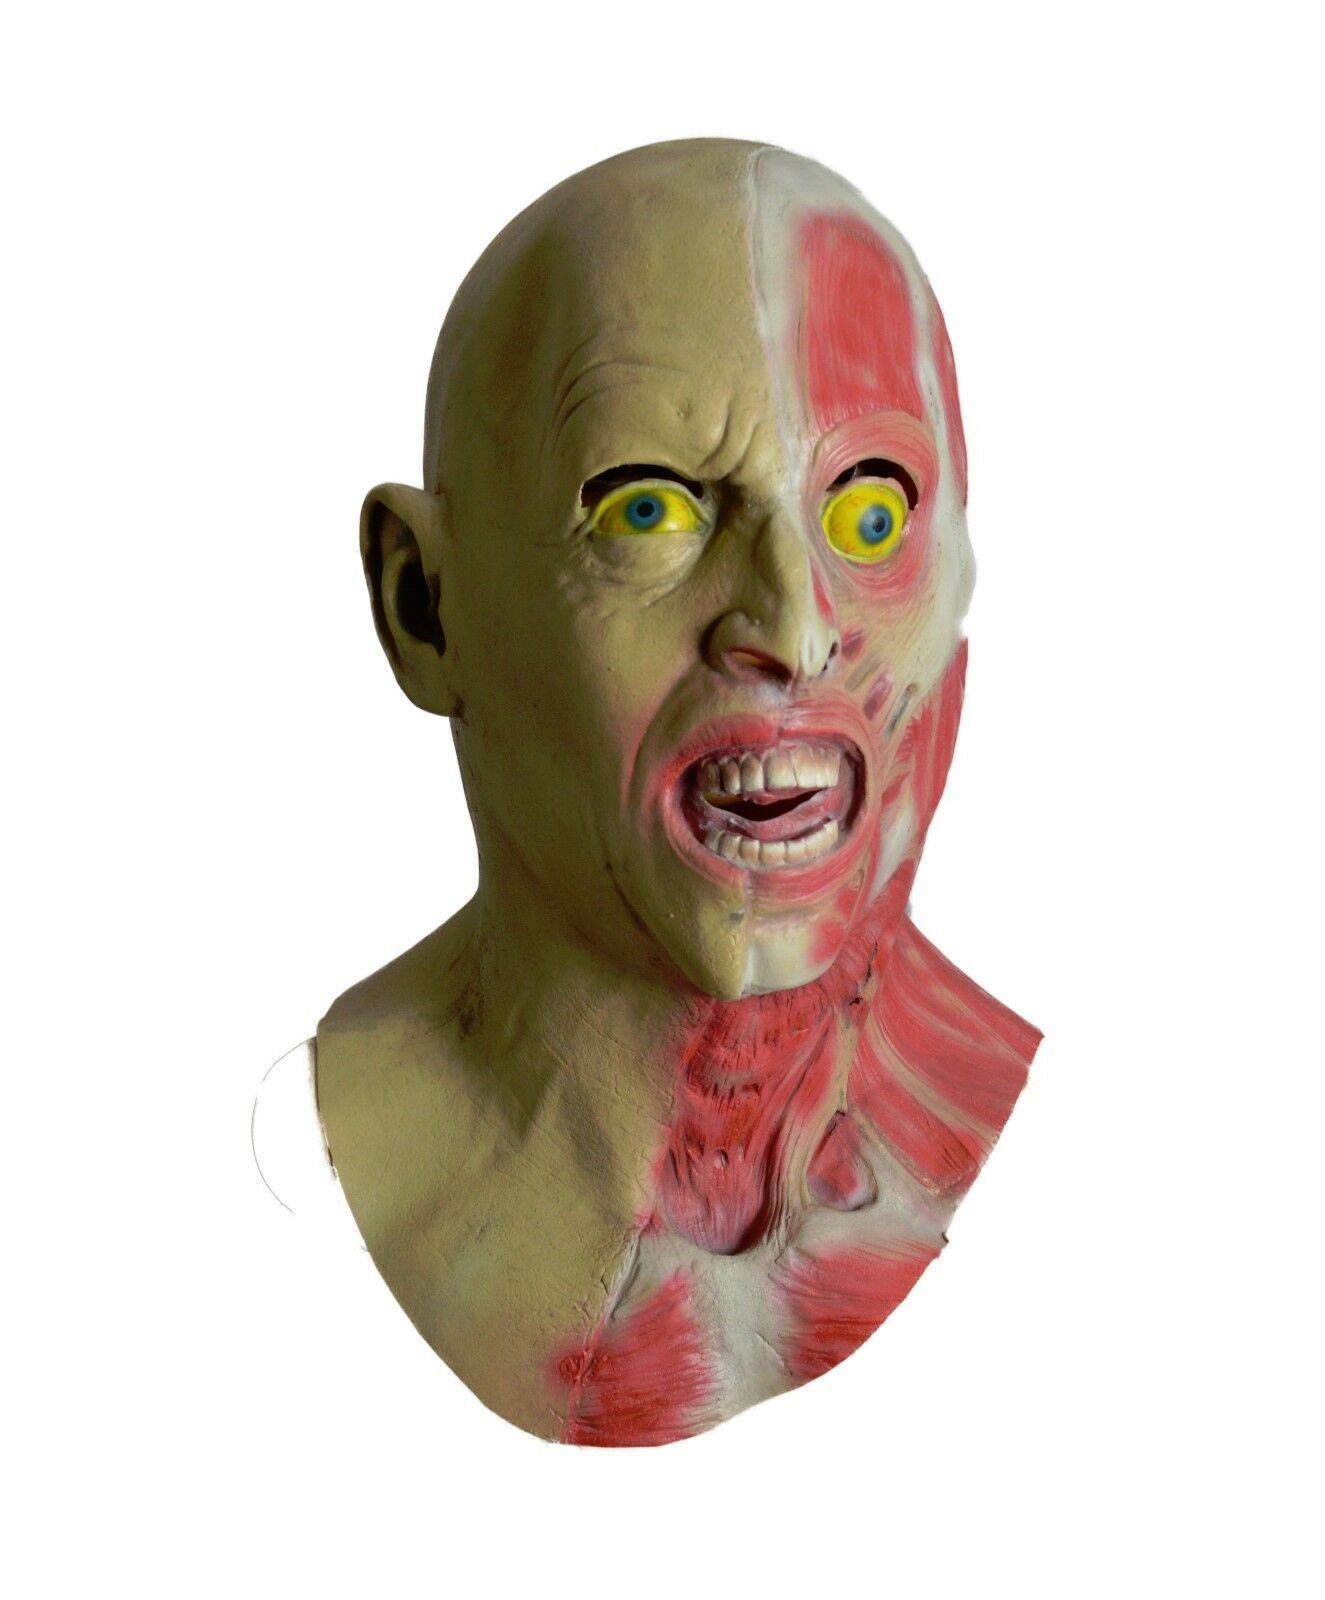 Details about Zombie Mask Two Faced Halloween Fancy Party Overhead Latex  Gory Masks